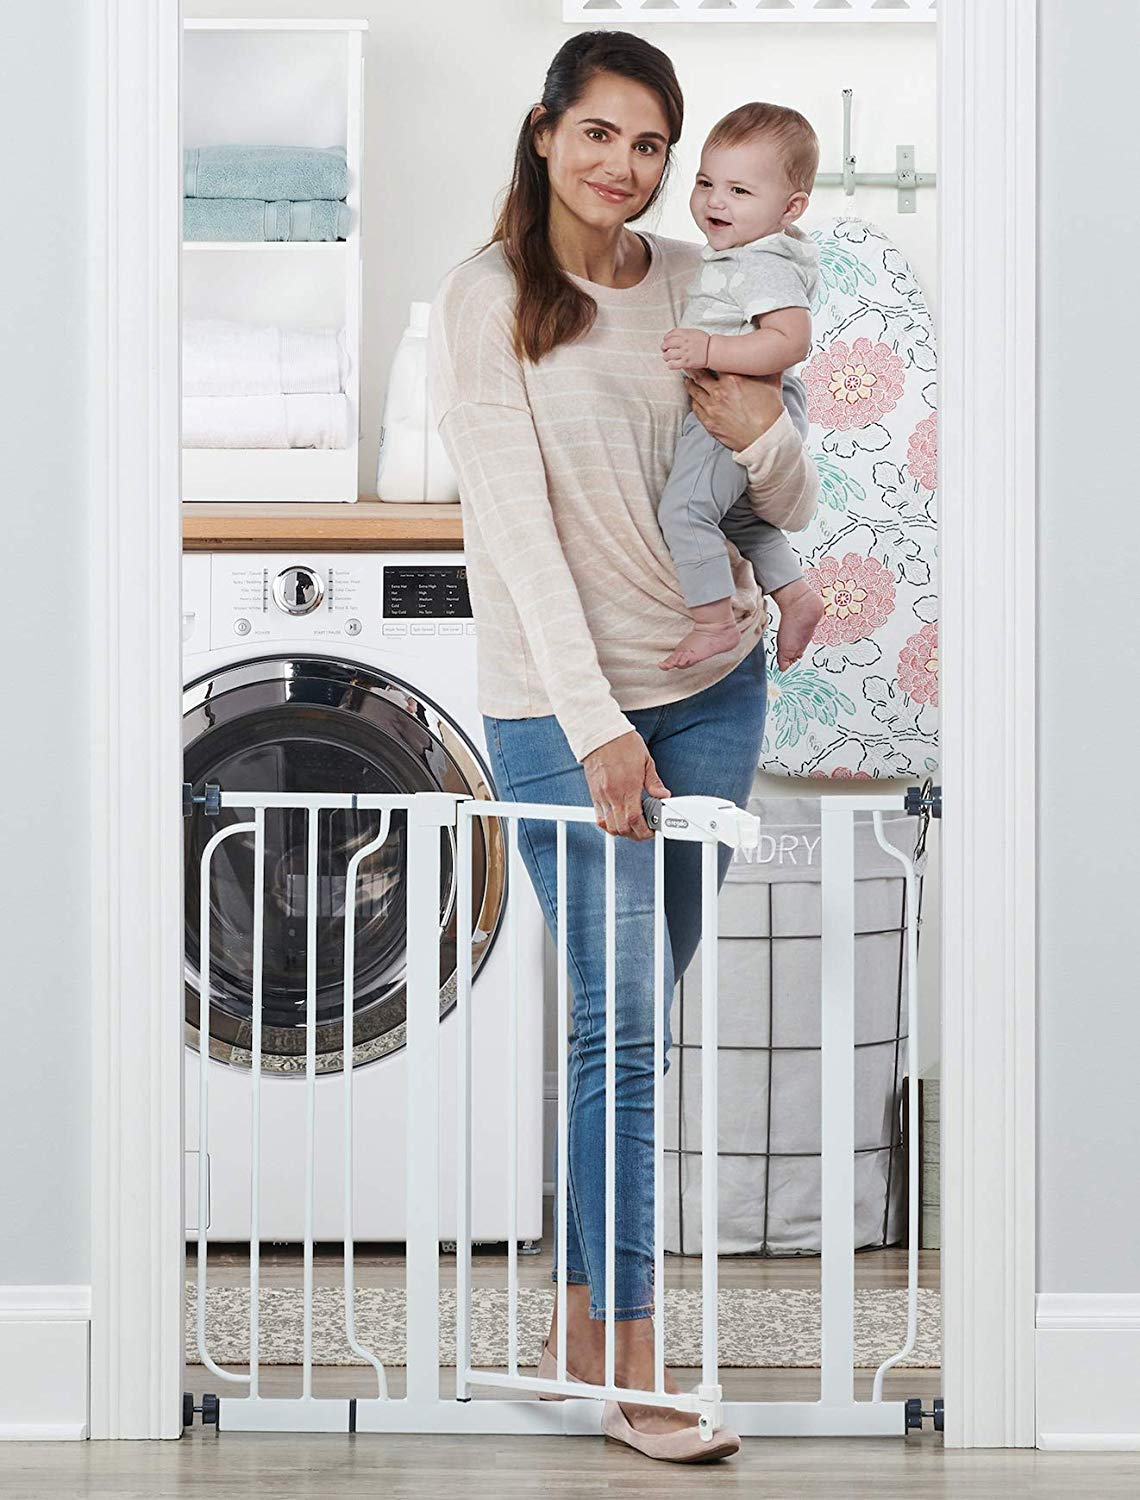 Baby Gate with Walk-Through (Regalo) Image